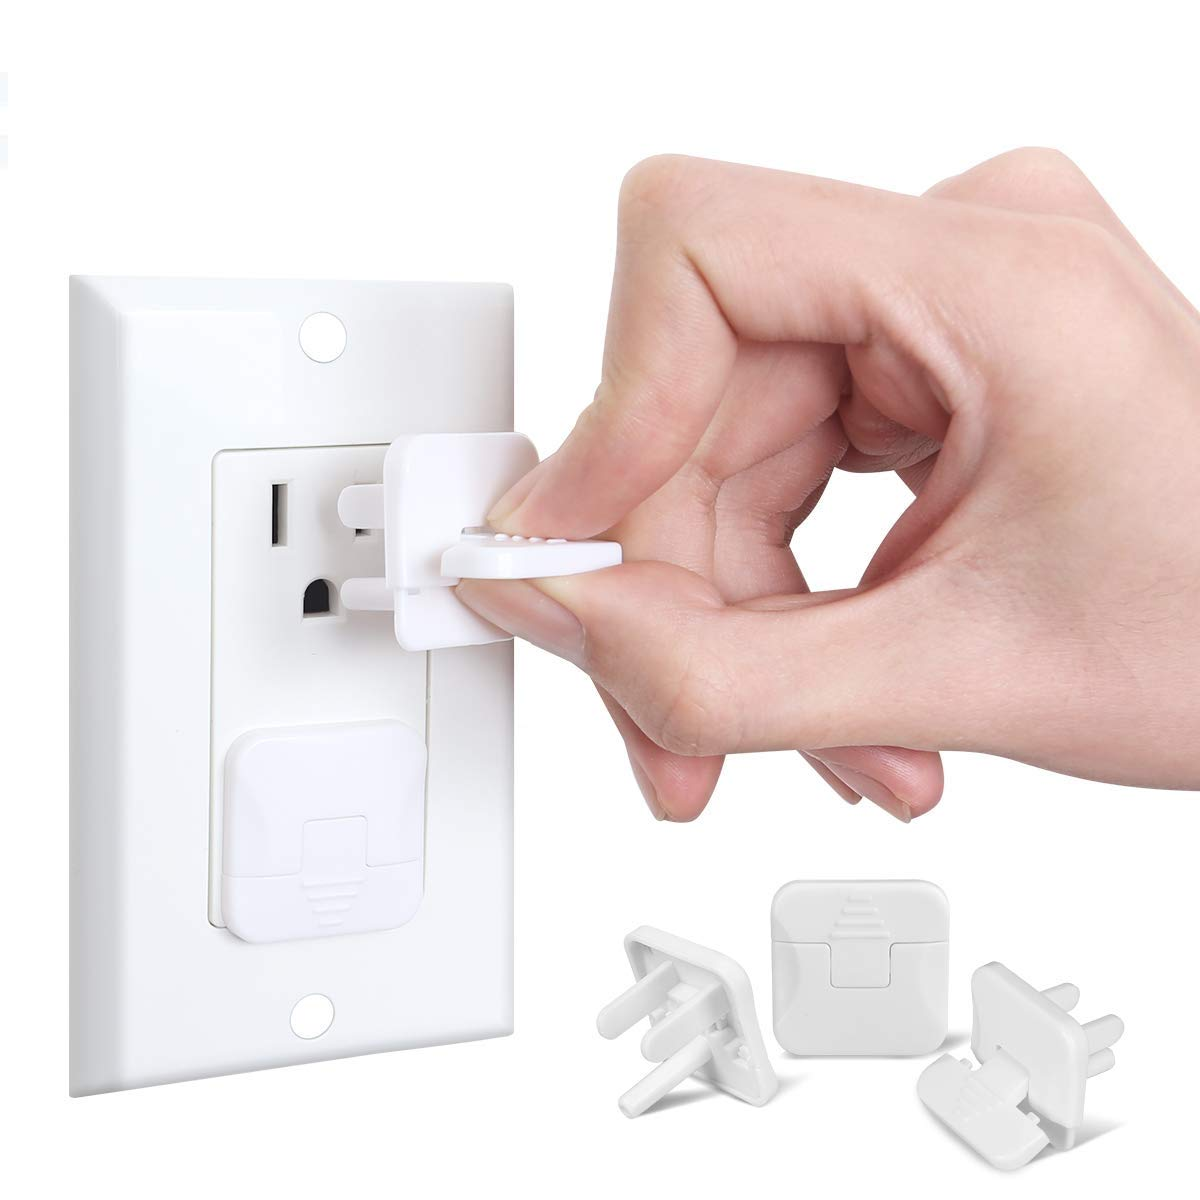 38 Pack Baby Proofing Outlet Plugs Probebi No Easy To Remove By Children Keep Prevent Baby From Accidental Shock Hazard Baby